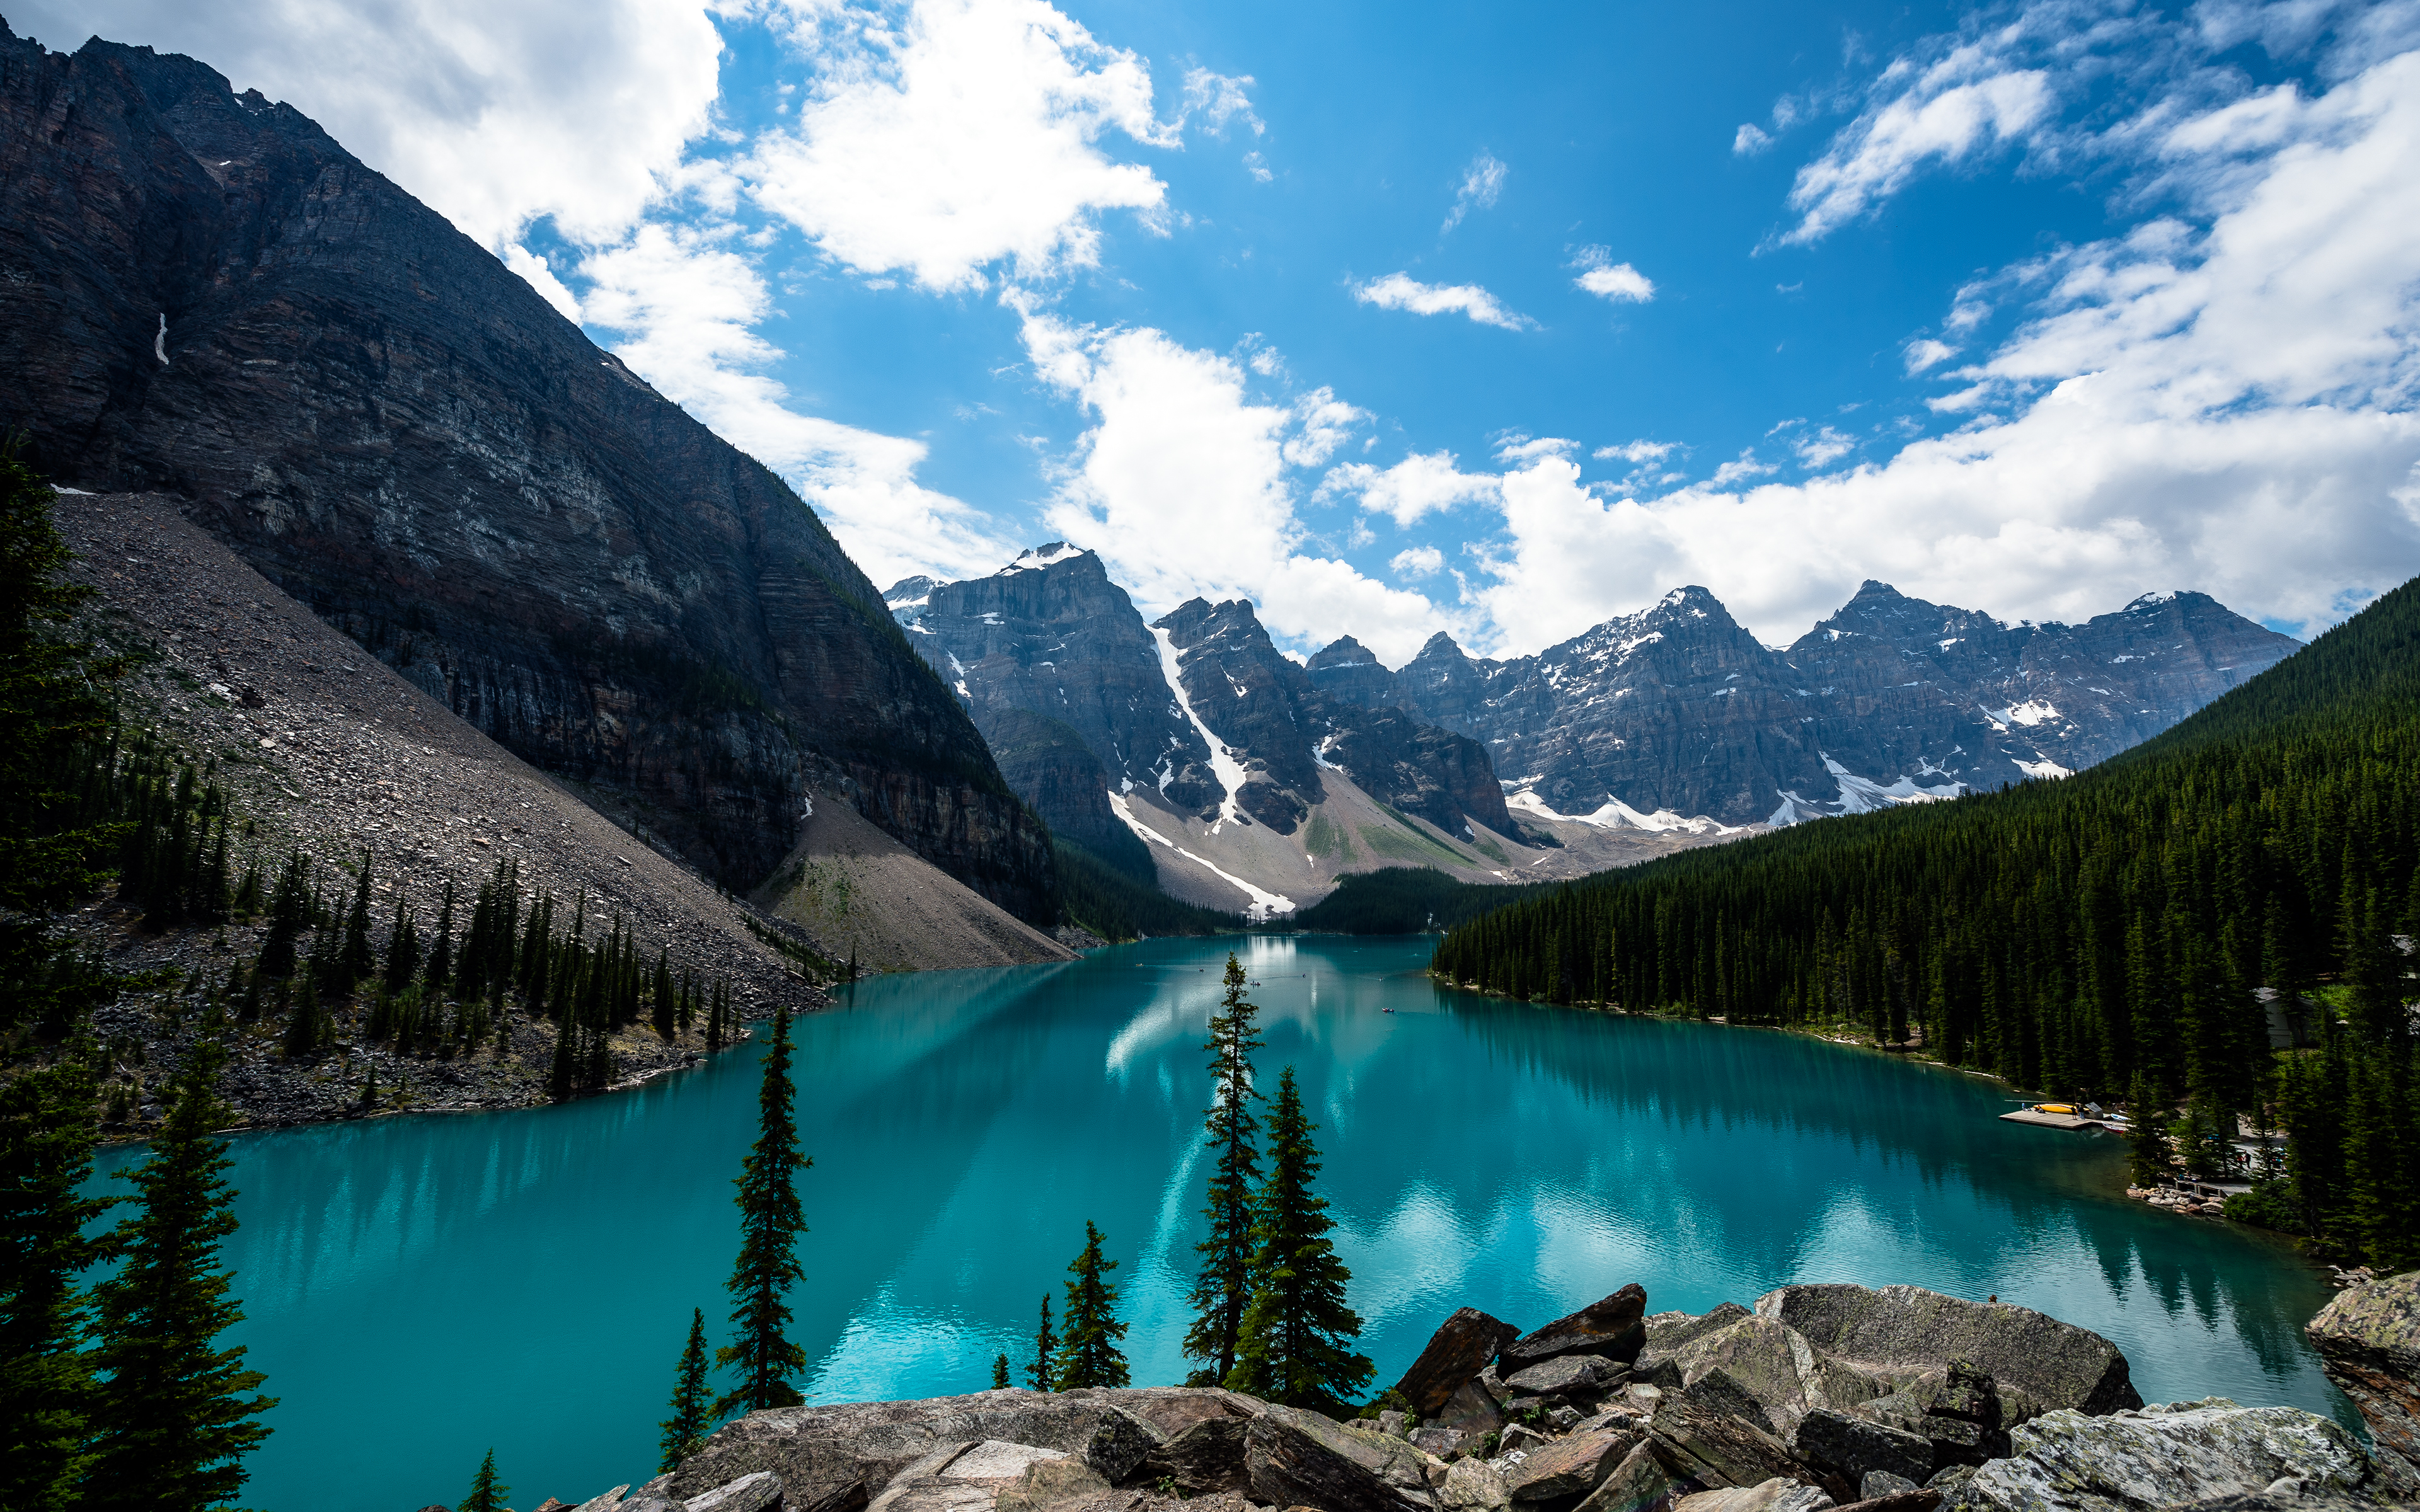 Lake in Banff National Park Alberta Canada wallpapers and images 3840x2400